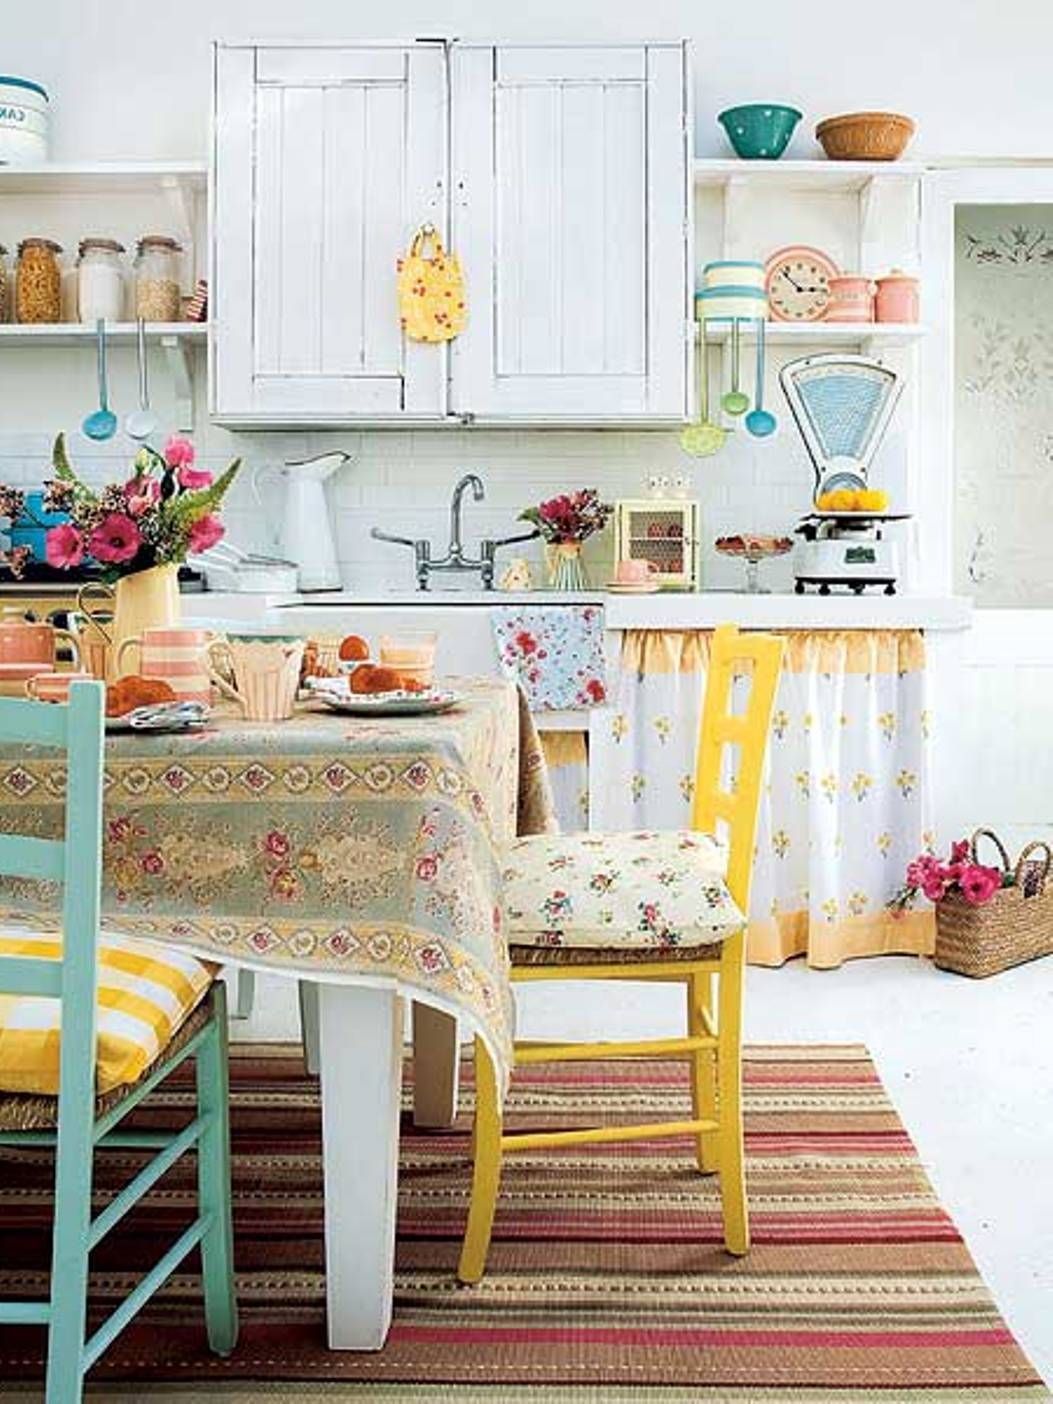 Ideas for kitchen decor  Shabby Chic Kitchen Decorating Ideas  Shabby Kitchens and Country